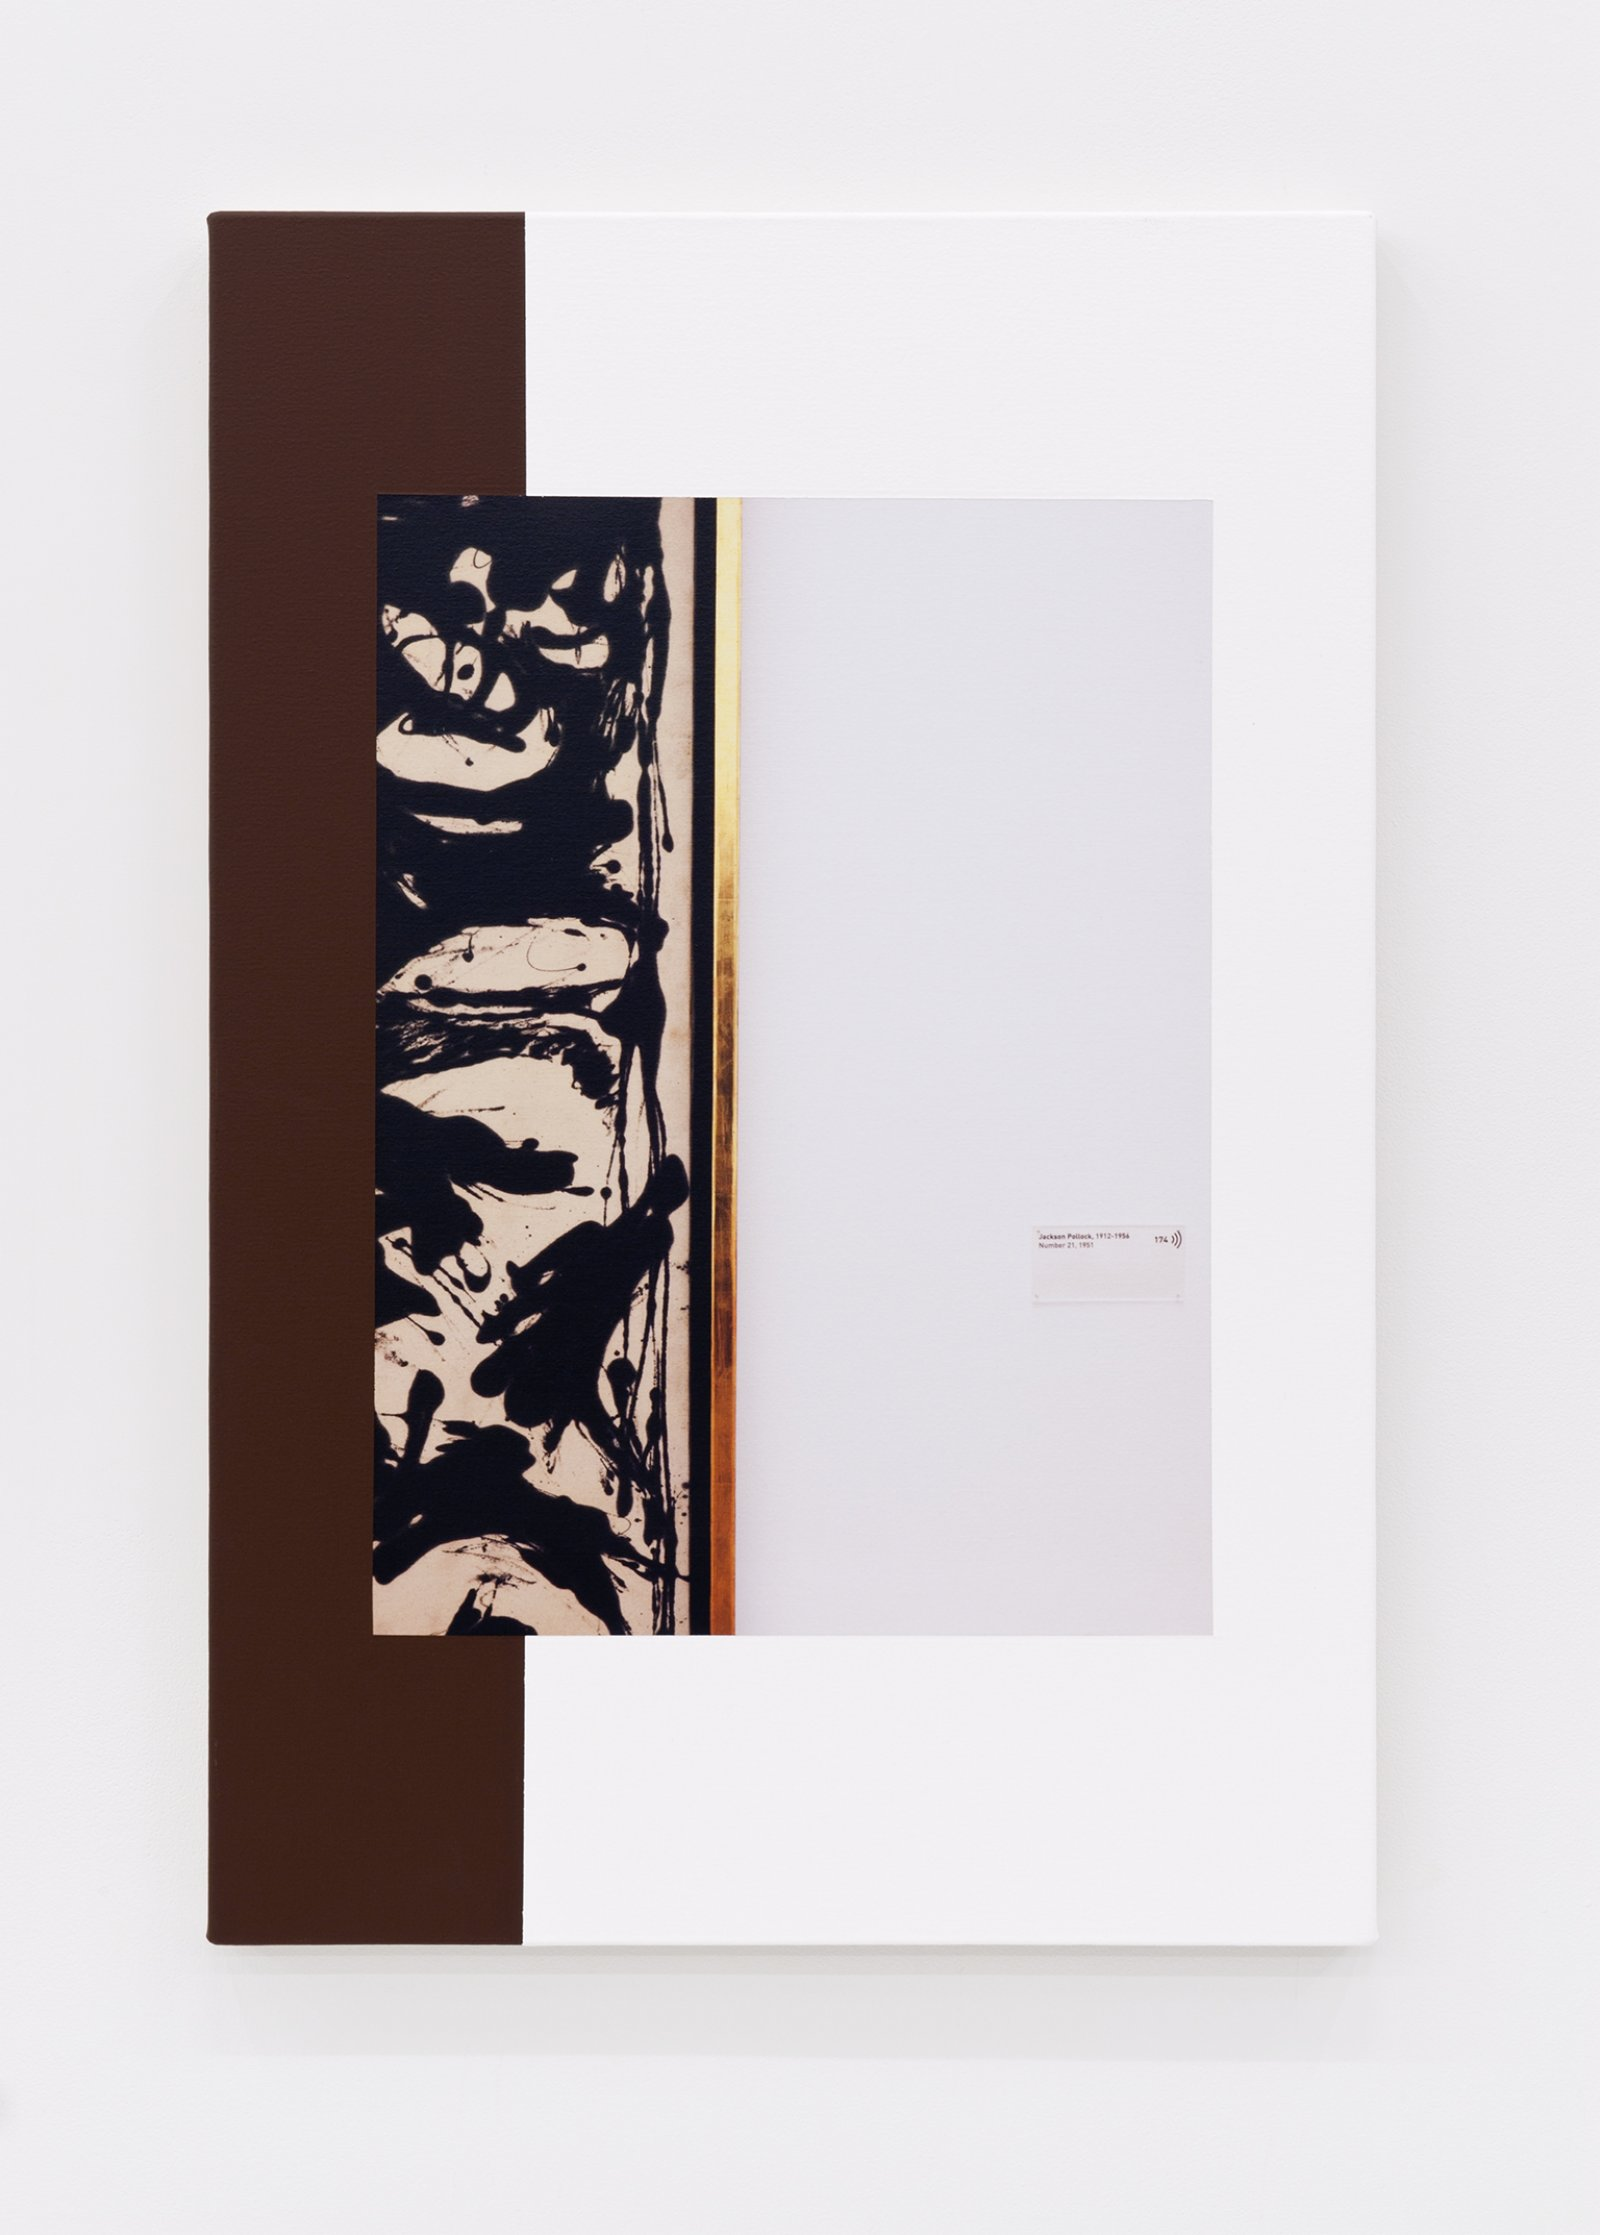 Ian Wallace,Abstract Composition(with Pollock Number 21),2012, photolaminate with acrylic on canvas, 36 x 24in. (91 x 61 cm)